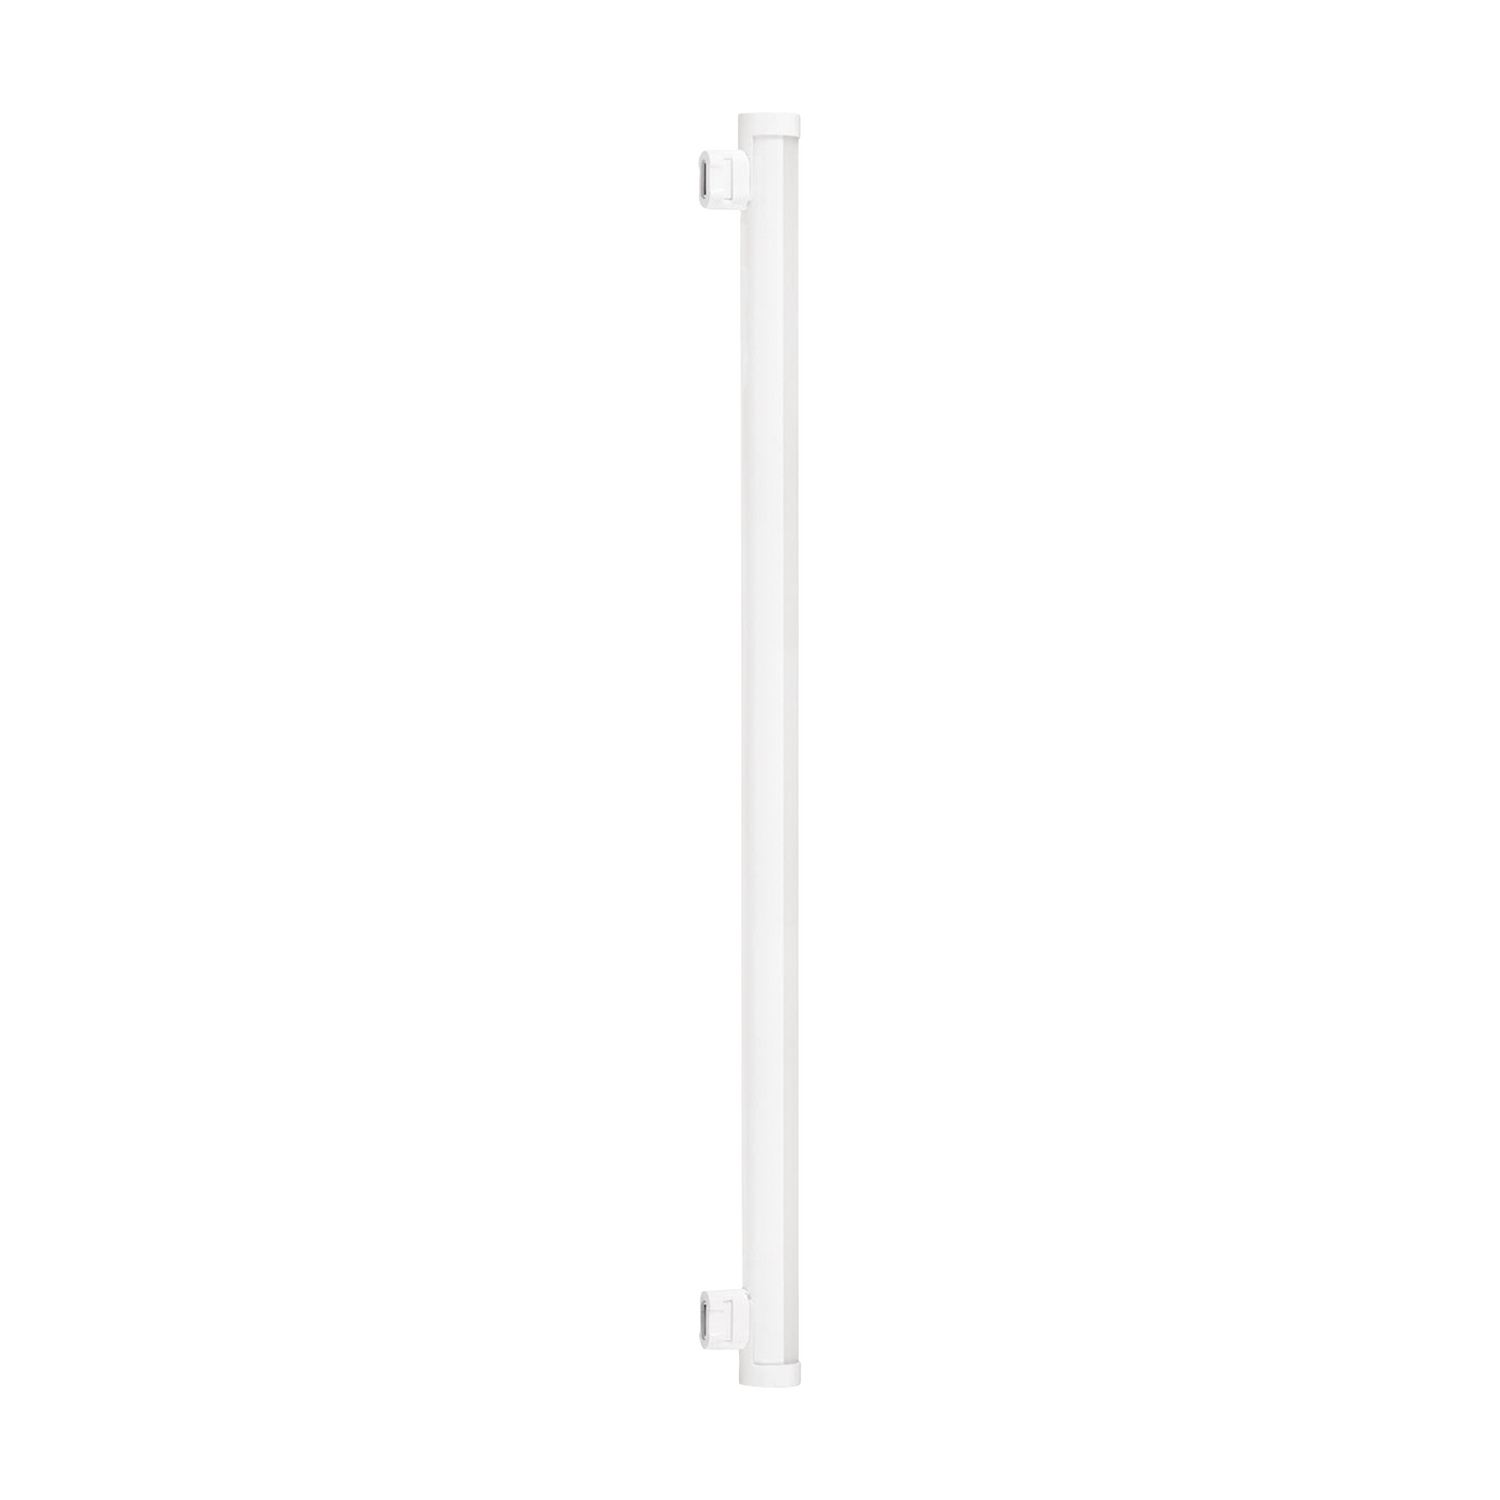 led-lampe-s14s-linear-45-w-420-lm-2700-k